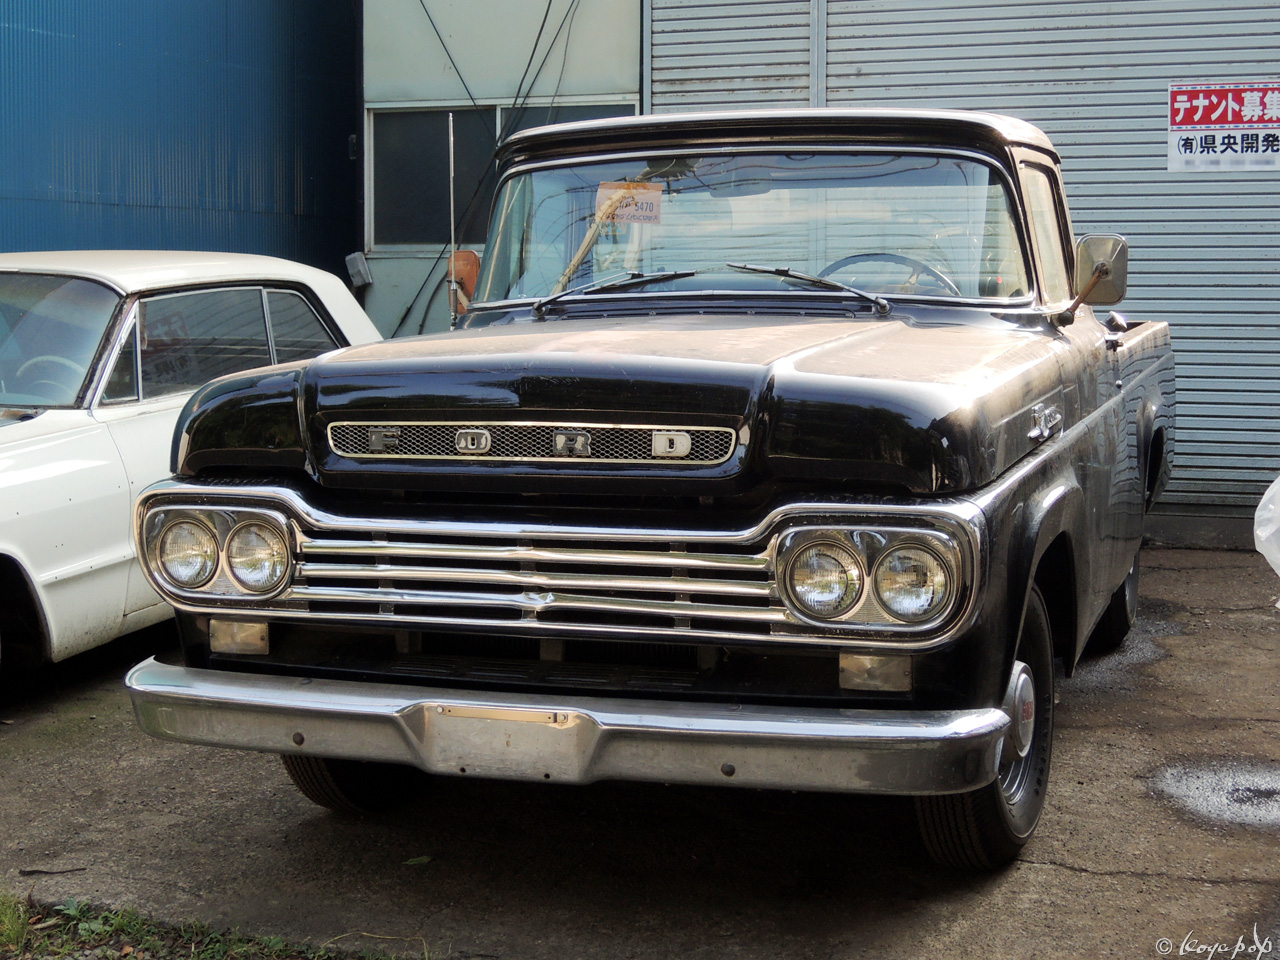 01 ford f-100 130608-766s1280